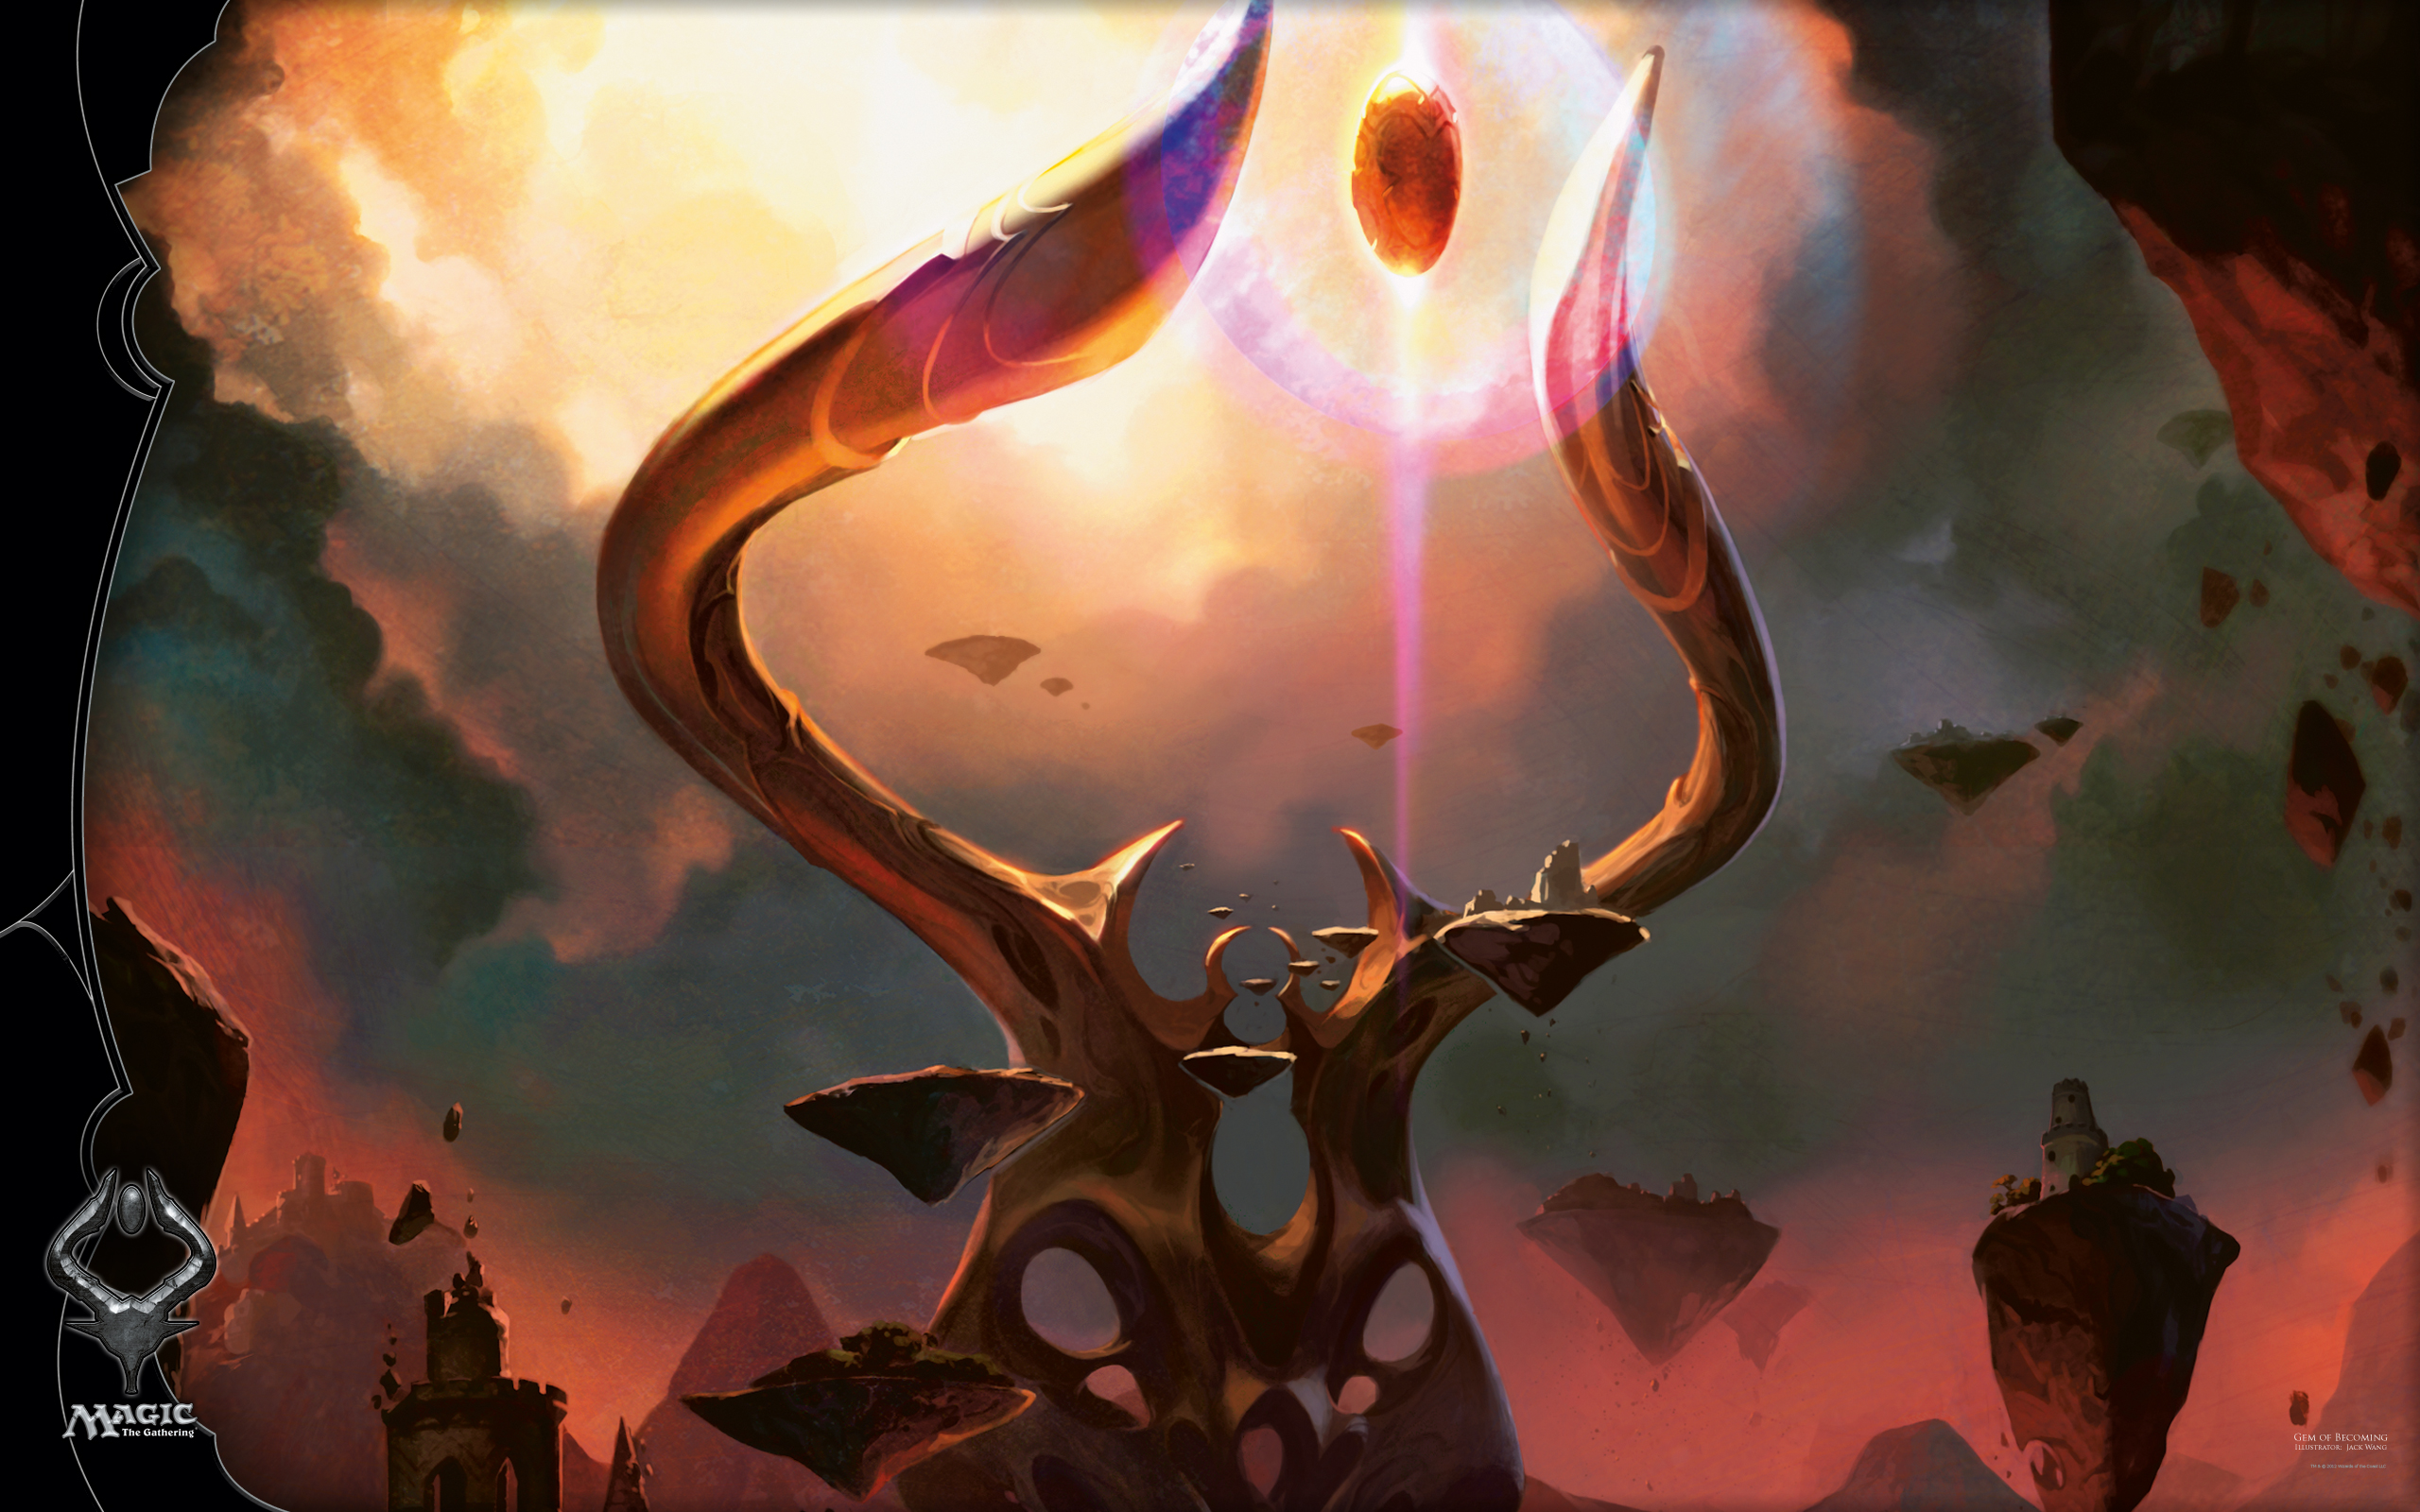 Magic The Gathering Full HD Wallpaper And Background Image